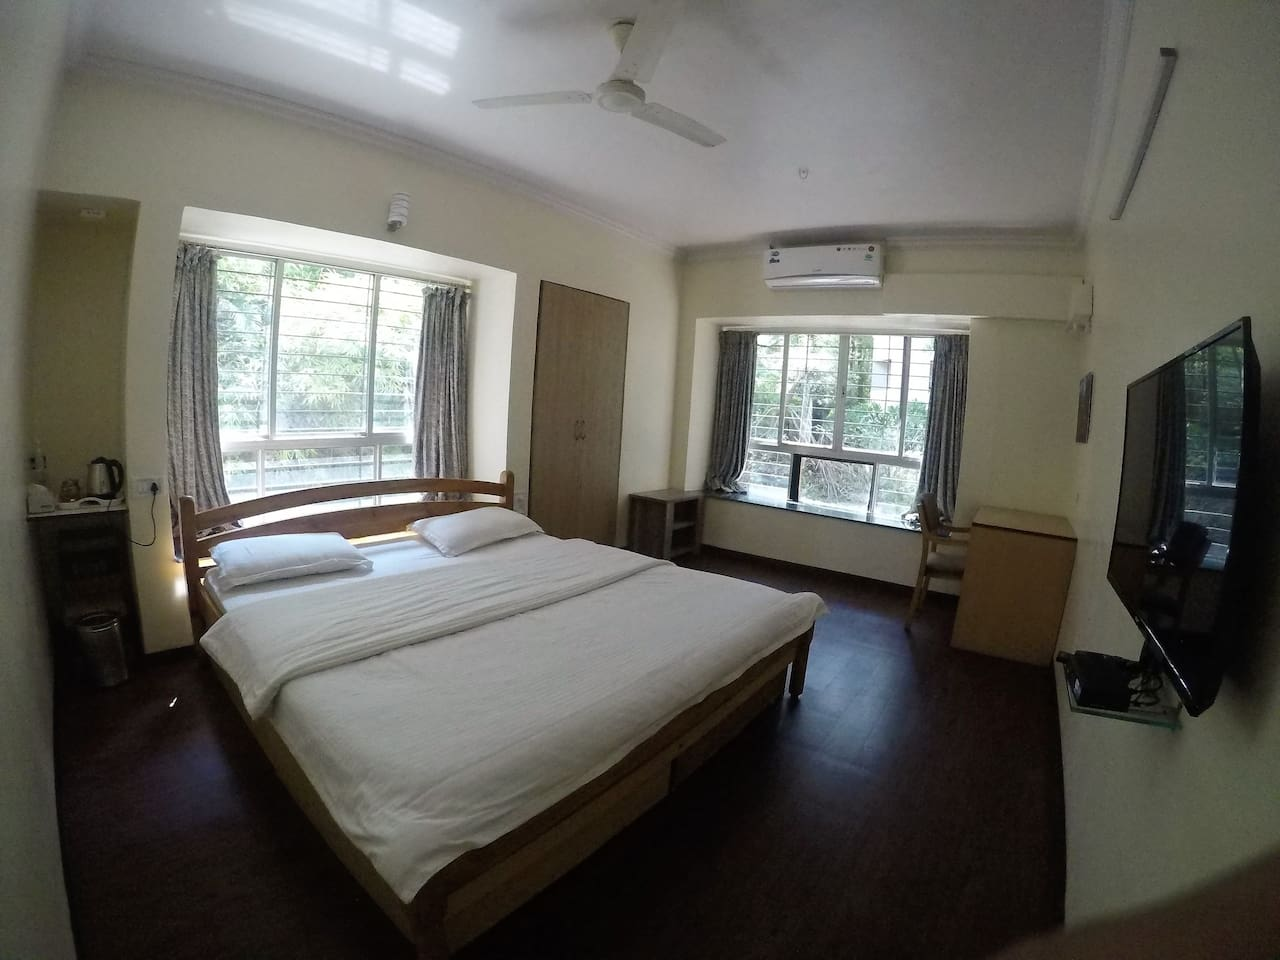 Bedroom with a king size bed, AC, TV, free WiFi, In room kettle, study table, wadrobe